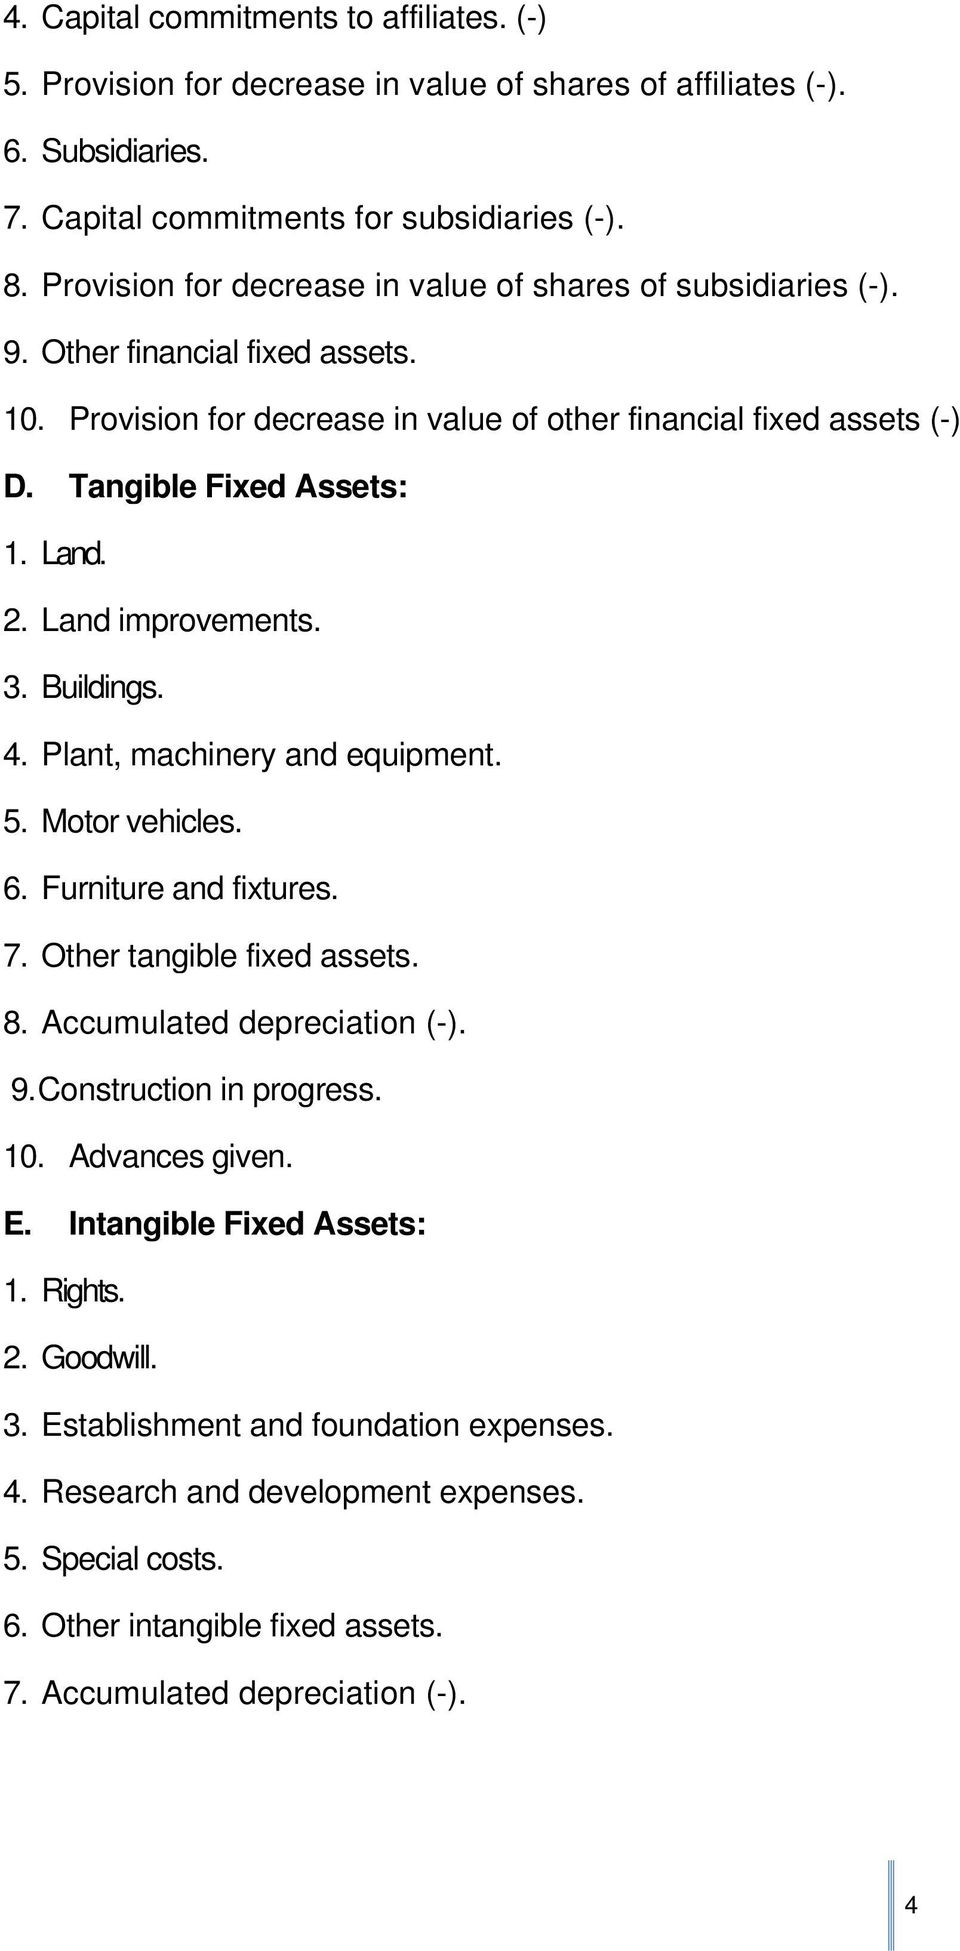 Land. 2. Land improvements. 3. Buildings. 4. Plant, machinery and equipment. 5. Motor vehicles. 6. Furniture and fixtures. 7. Other tangible fixed assets. 8. Accumulated depreciation (-). 9.